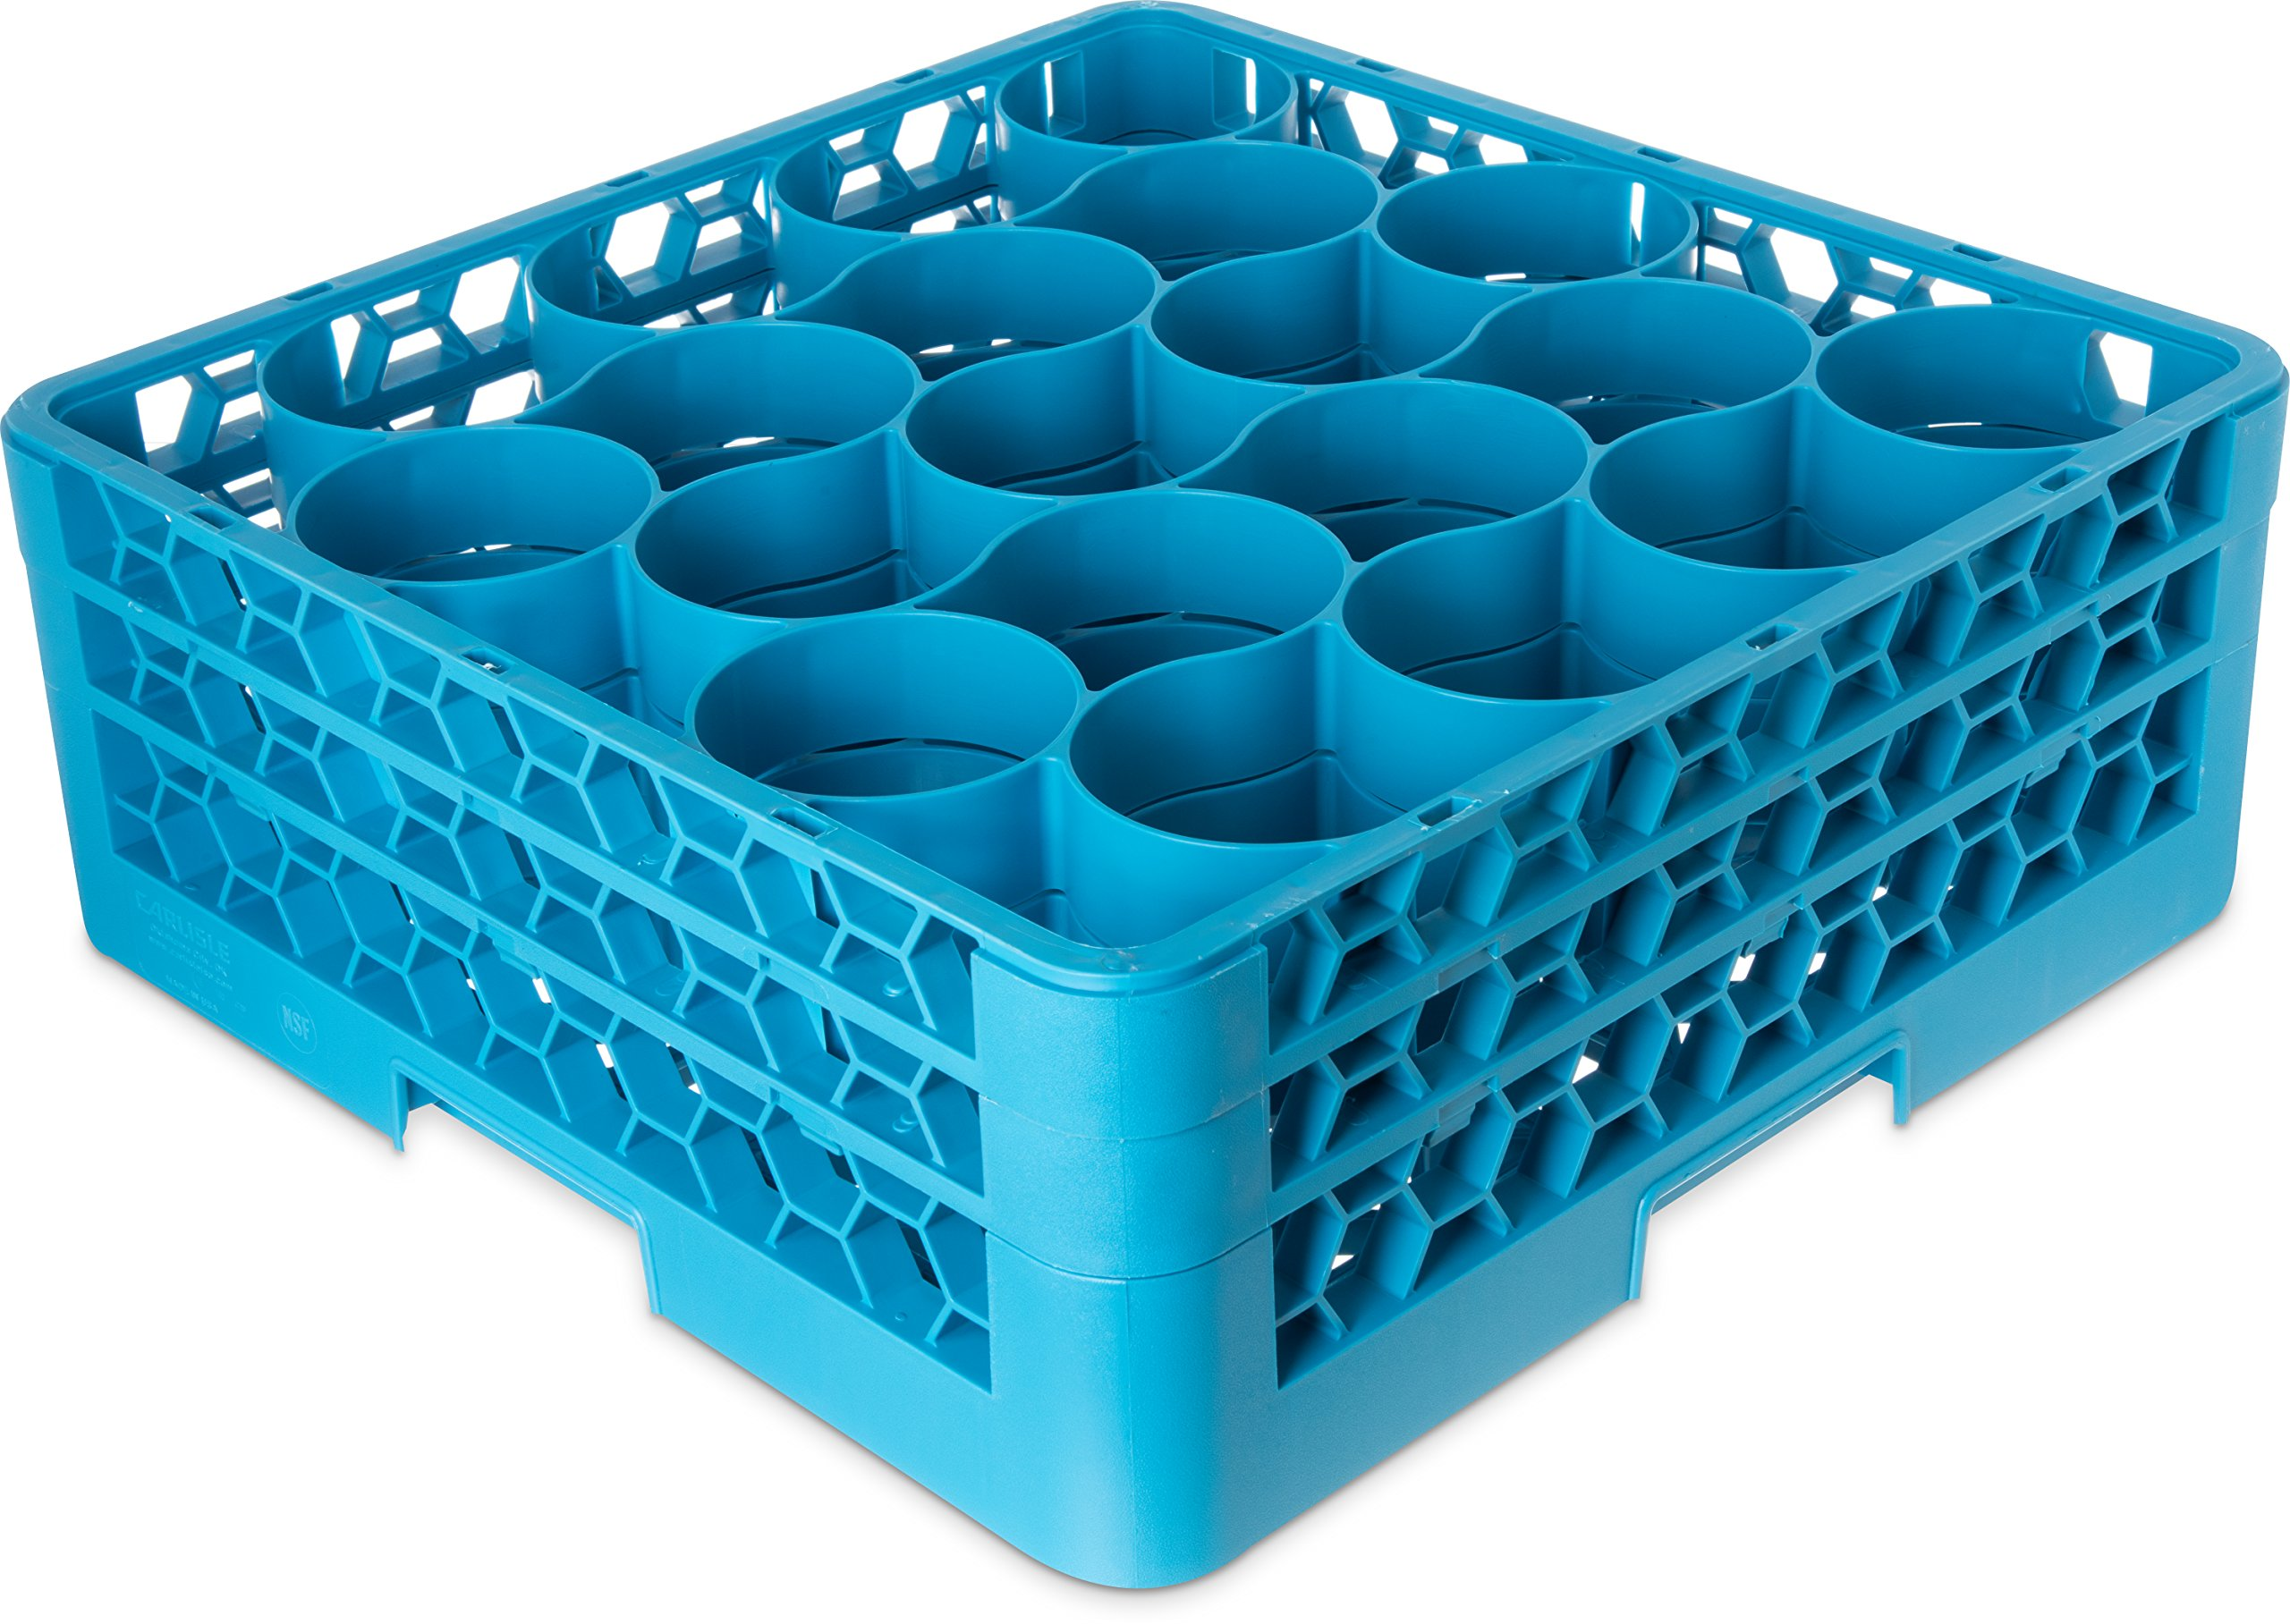 Carlisle RW20-114 OptiClean NeWave Polypropylene 20-Compartment Glass Rack with 2 Extenders, 19-3/4'' Length x 19-3/4'' Width x 7.12'' Height, Blue (Case of 3) by Carlisle